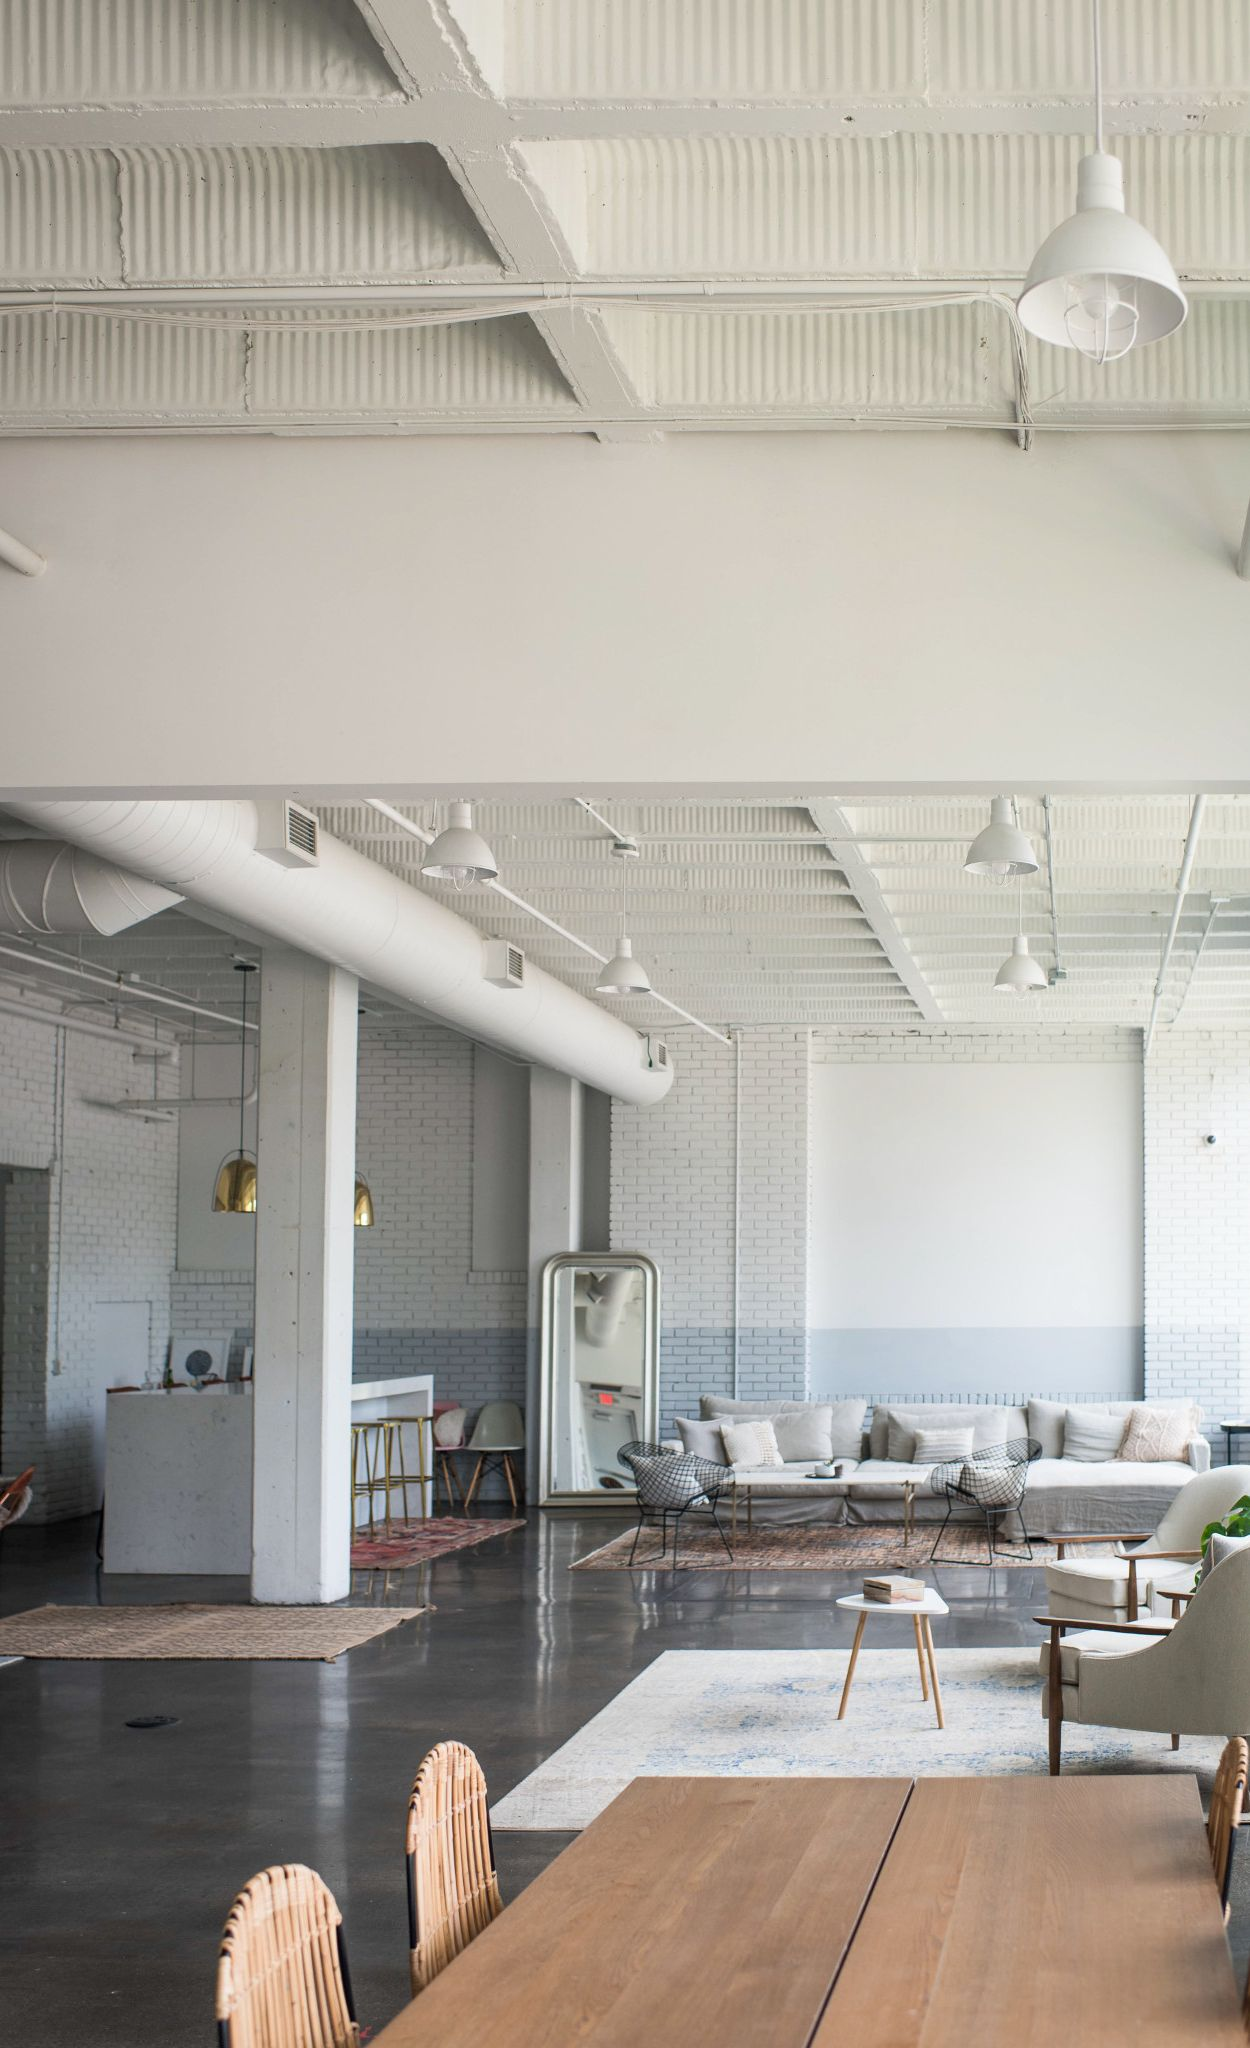 Exposed beams, pipes, and concrete flooring reflect the building's industrial roots.